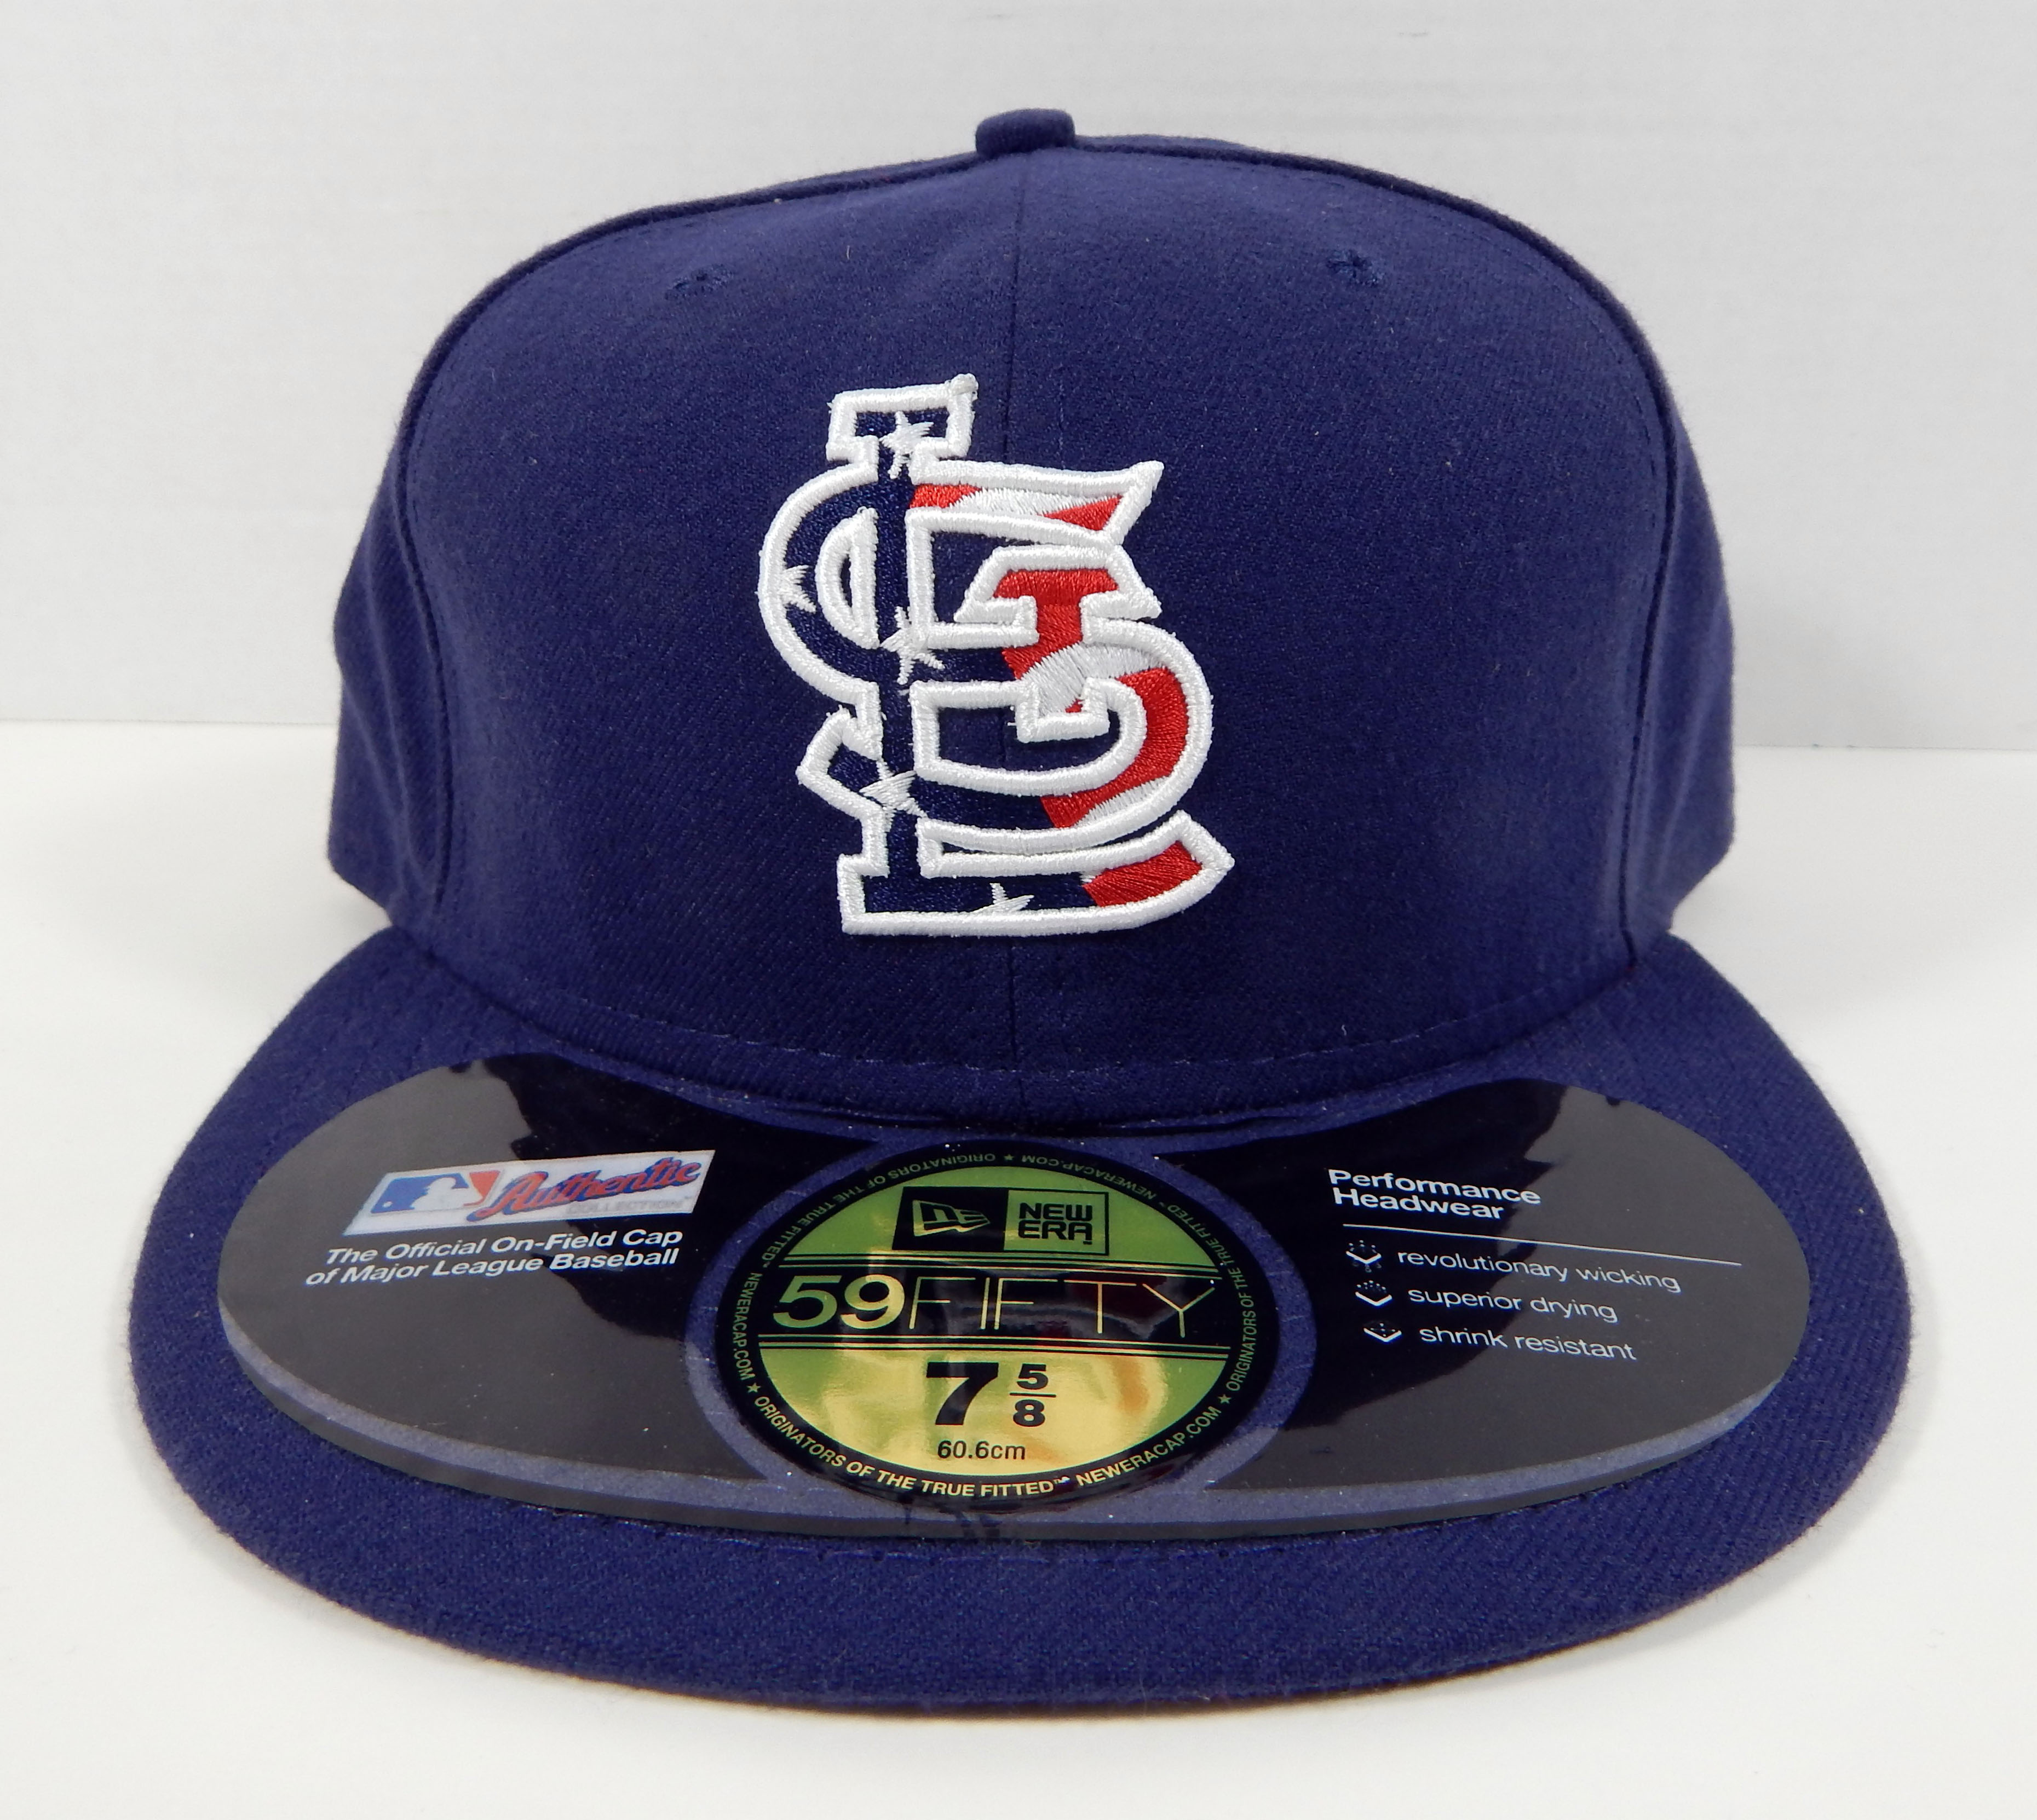 reputable site 4969e 6b495 Details about St. Louis Cardinals New Era Navy 4th July Stars   Stripes  59FIFTY Fitted Hat